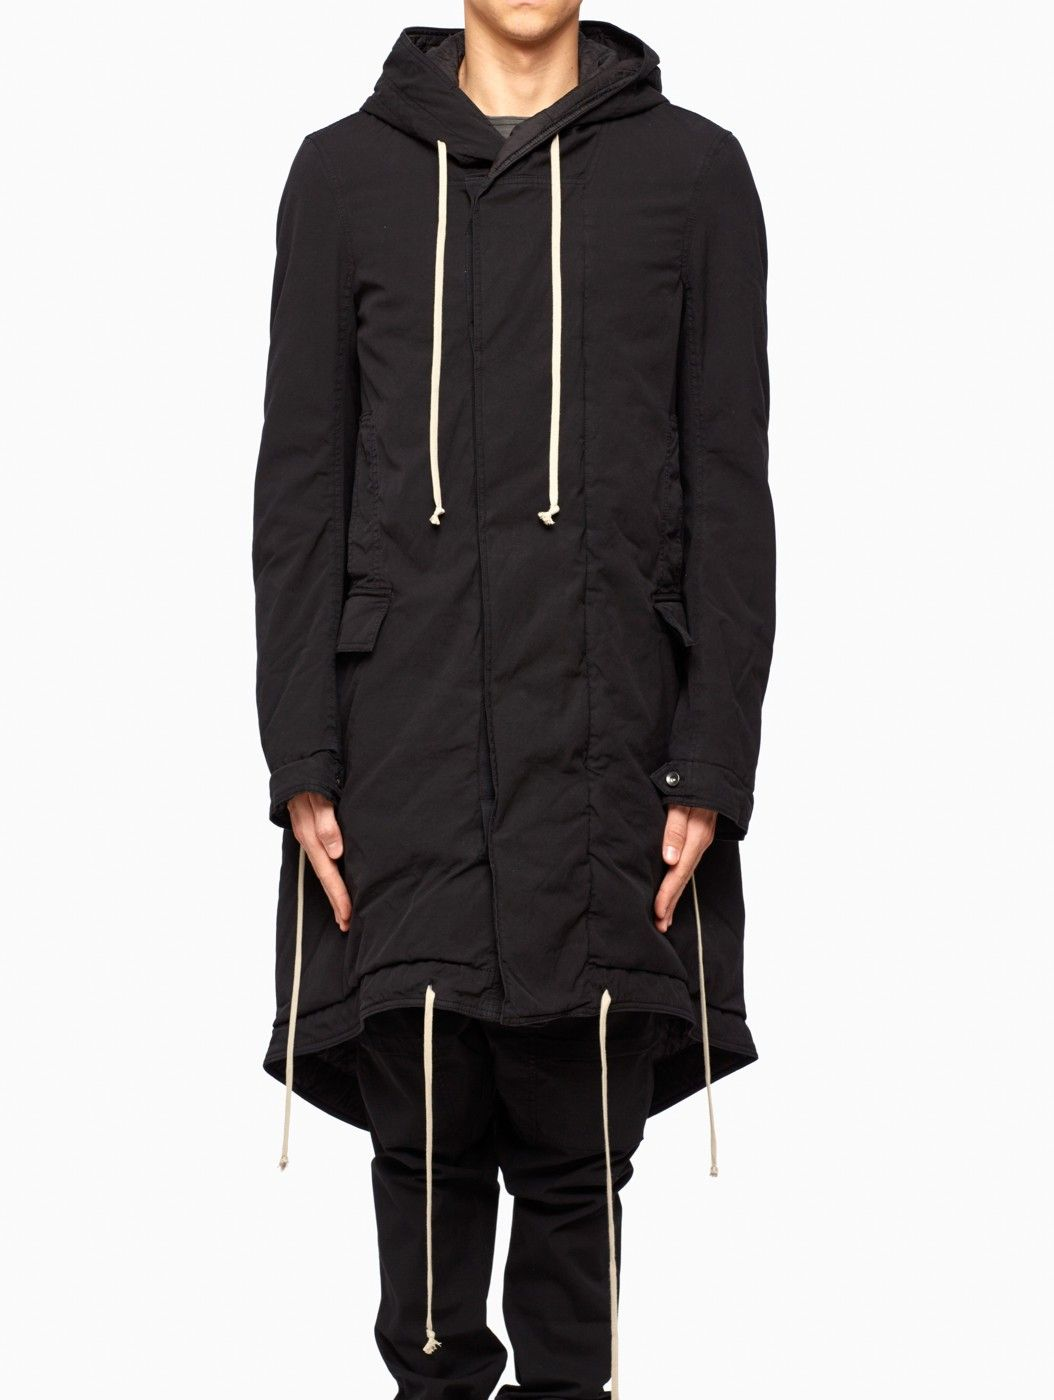 Fishtail parka from F/W2015-16 Rick Owens DRKSHDW